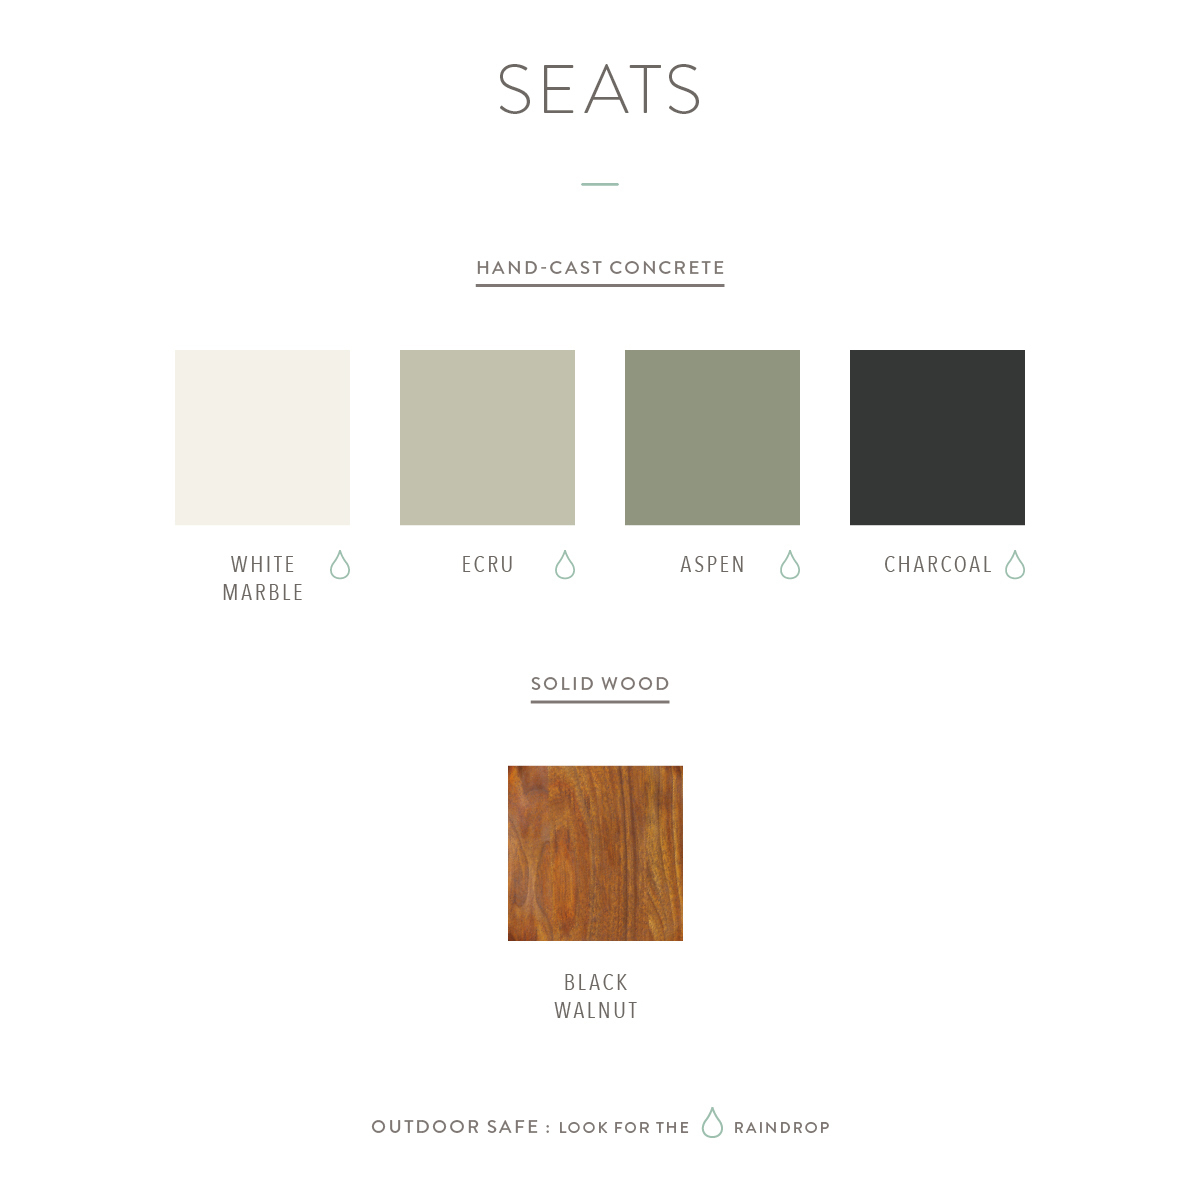 Coleman seat swatches